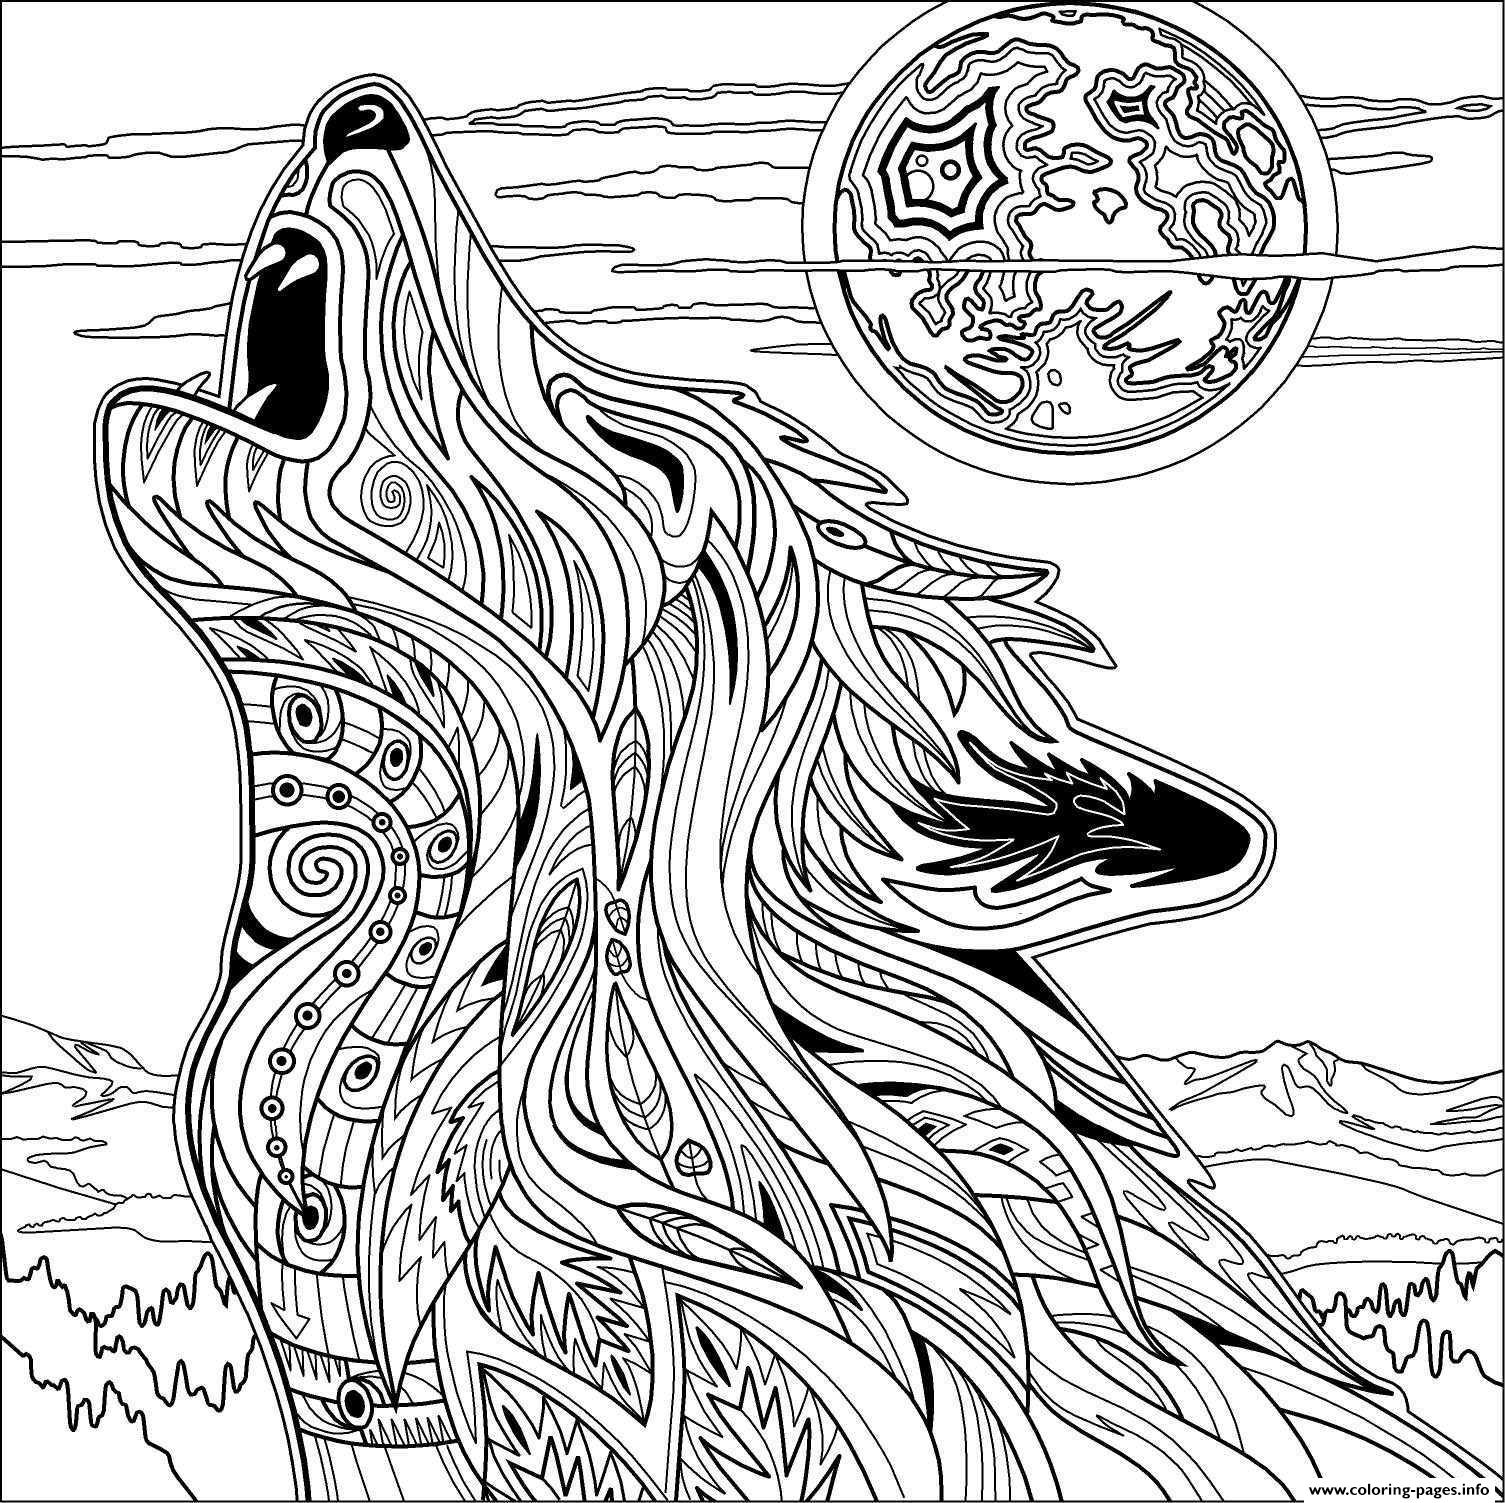 Wolf mandala coloring pages - Wolf For Adult Coloring Pages Printable